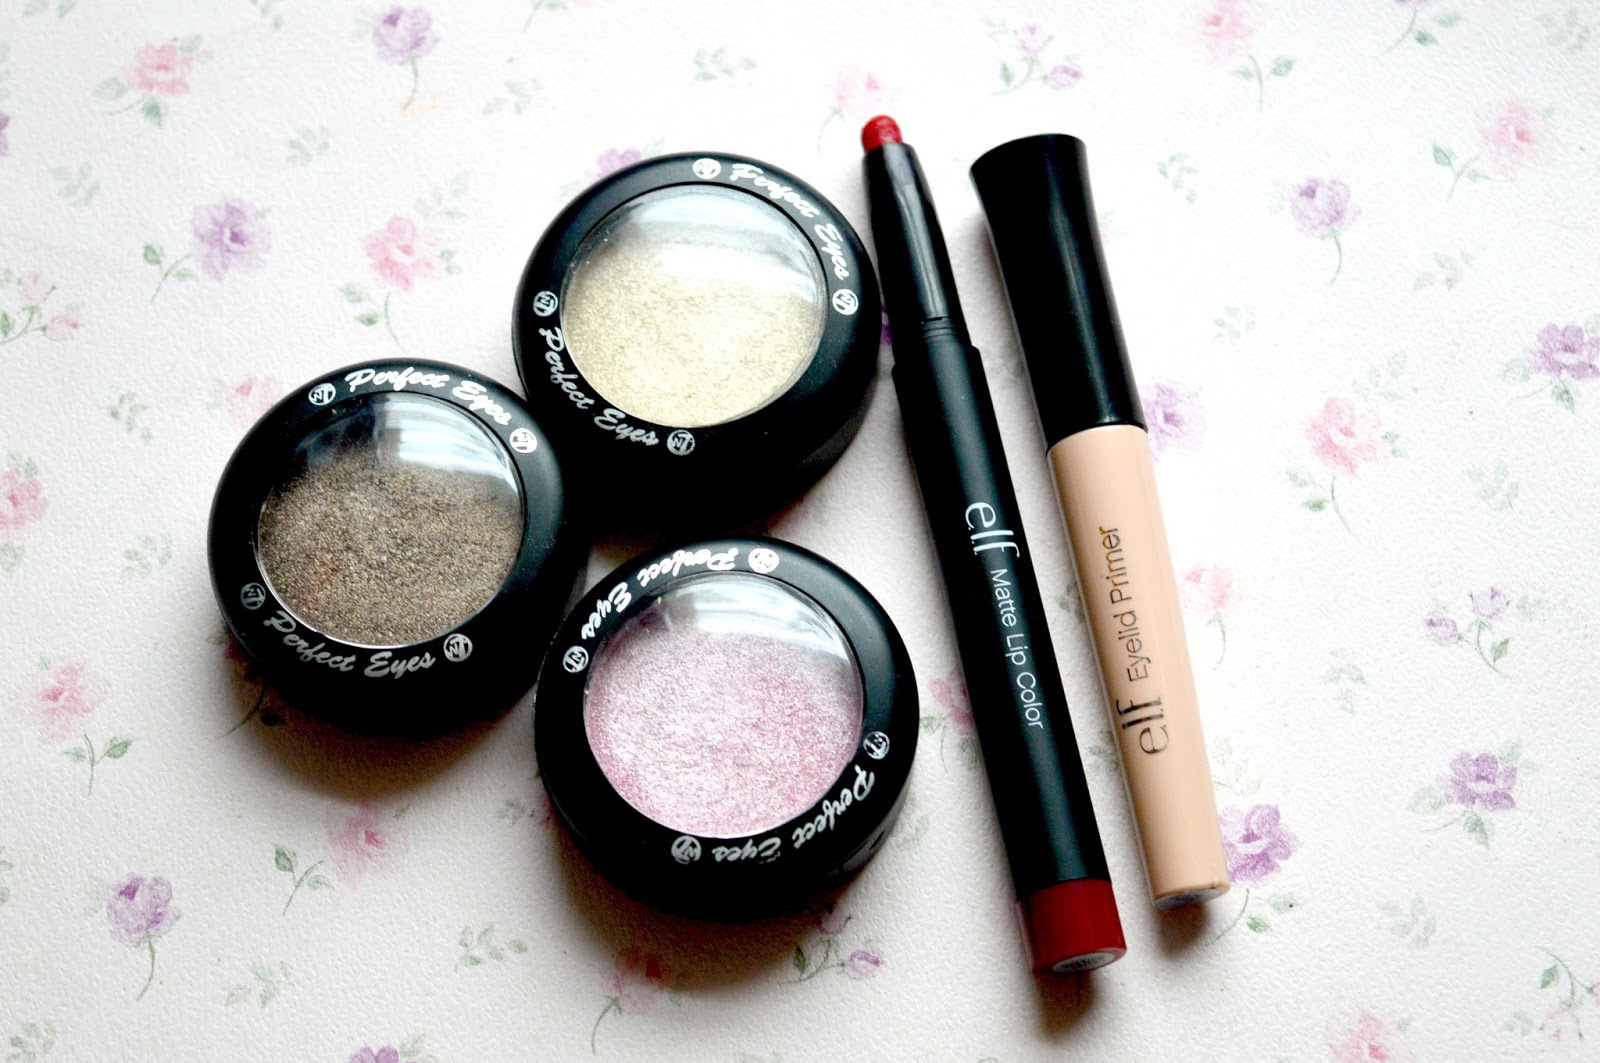 3 Super Affordable Underrated Products That Deserve More Hype | ELF Studio Matte Lip Colour in Rich Red, W7 Perfect Eyes Eyeshadows and ELF Eyelid Primer in Sheer